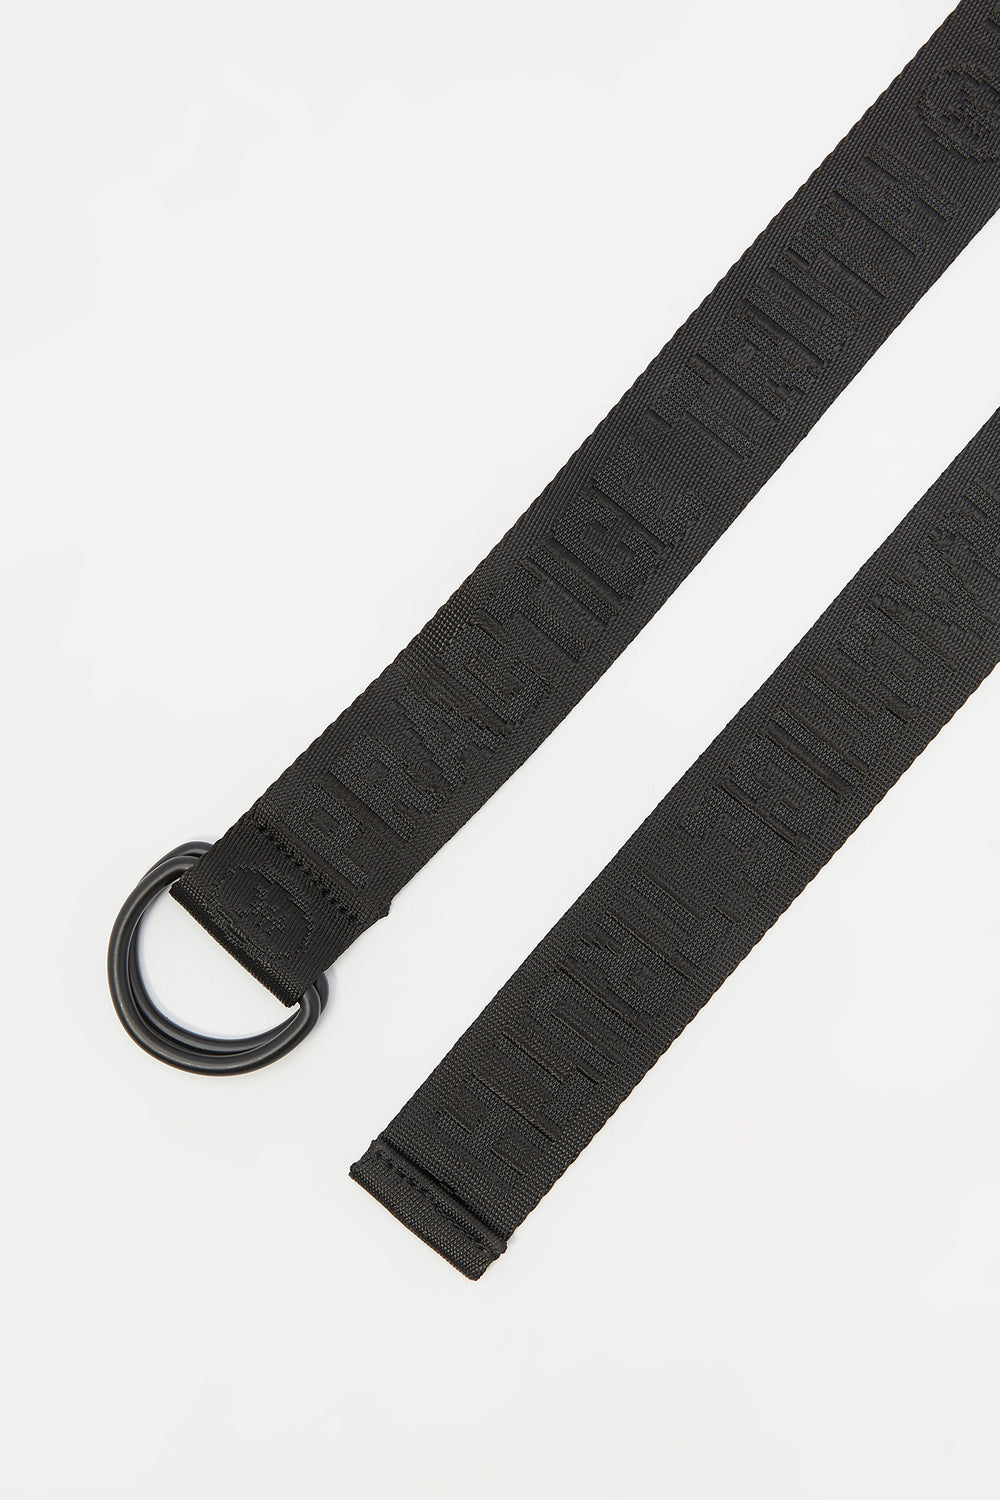 Ceinture Zoo York Practice Truth Noir